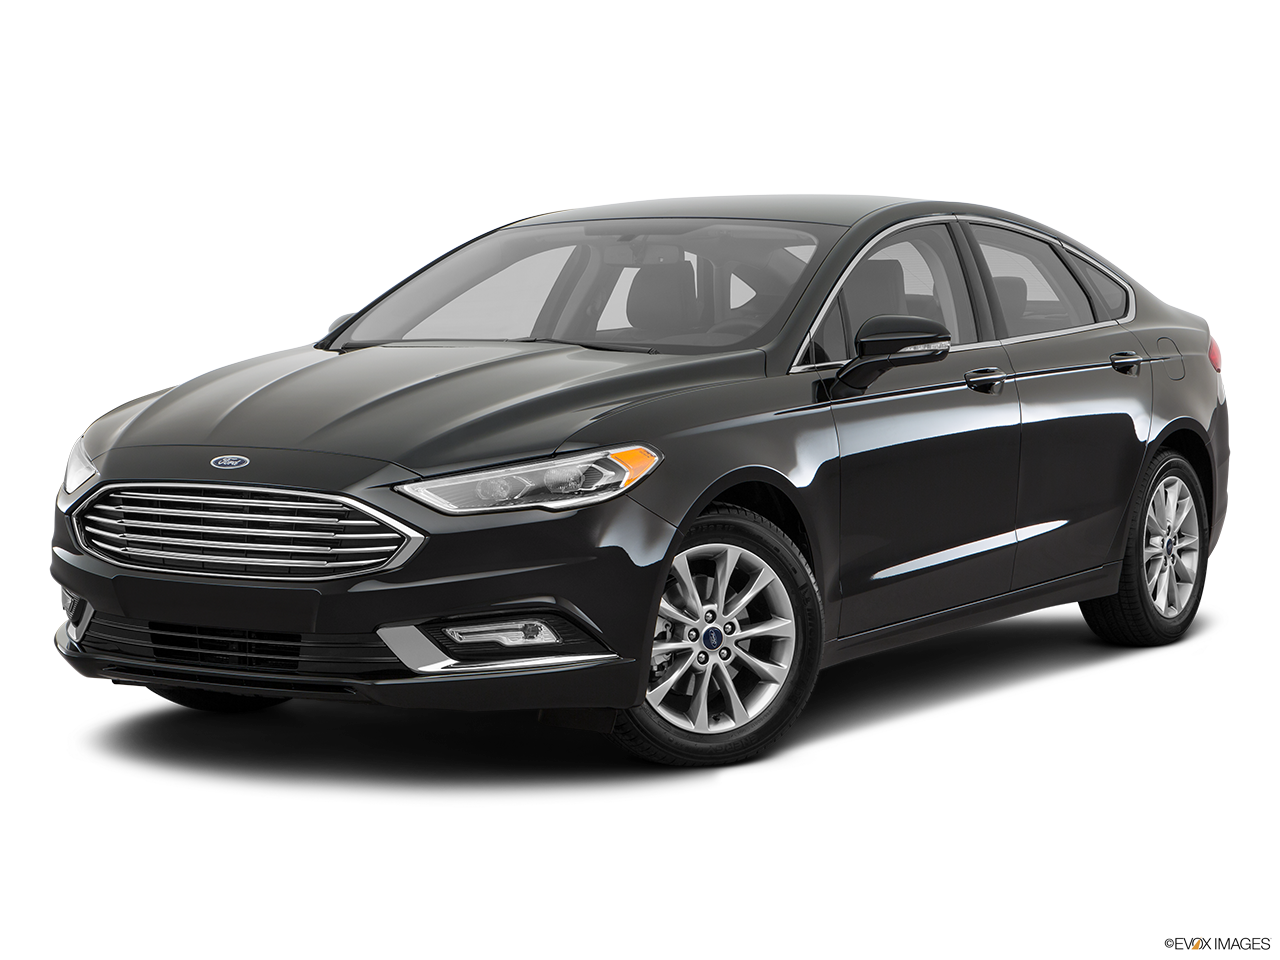 Test Drive A 2017 Ford Fusion at All Star Ford Canton in Canton